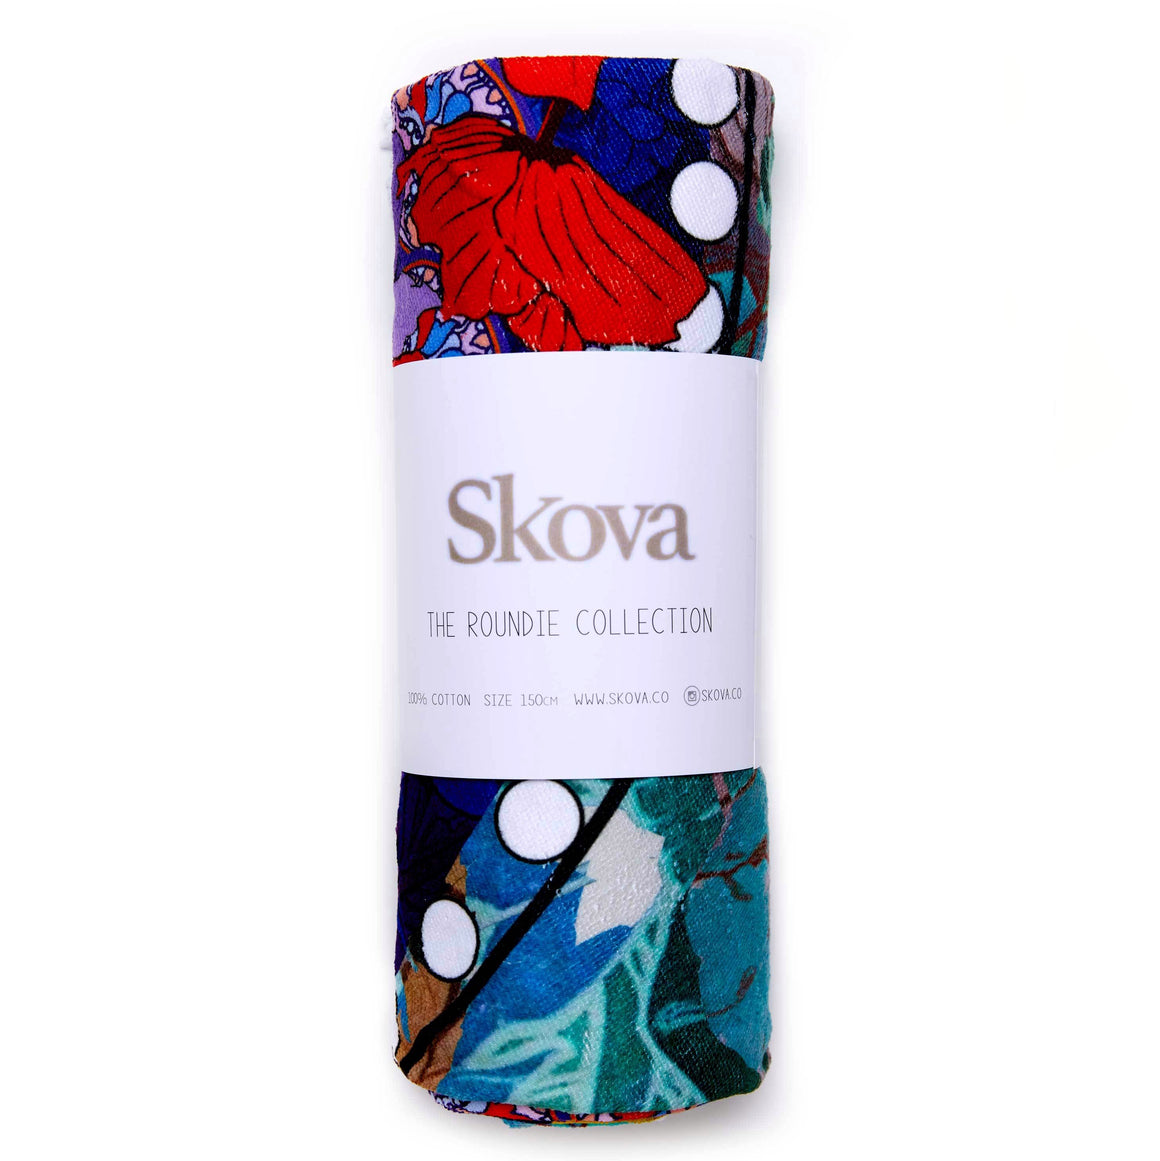 Skova Multi-Purpose, beach, picnic, pool, travel blanket! A travel must-have!Roundie Towel Round